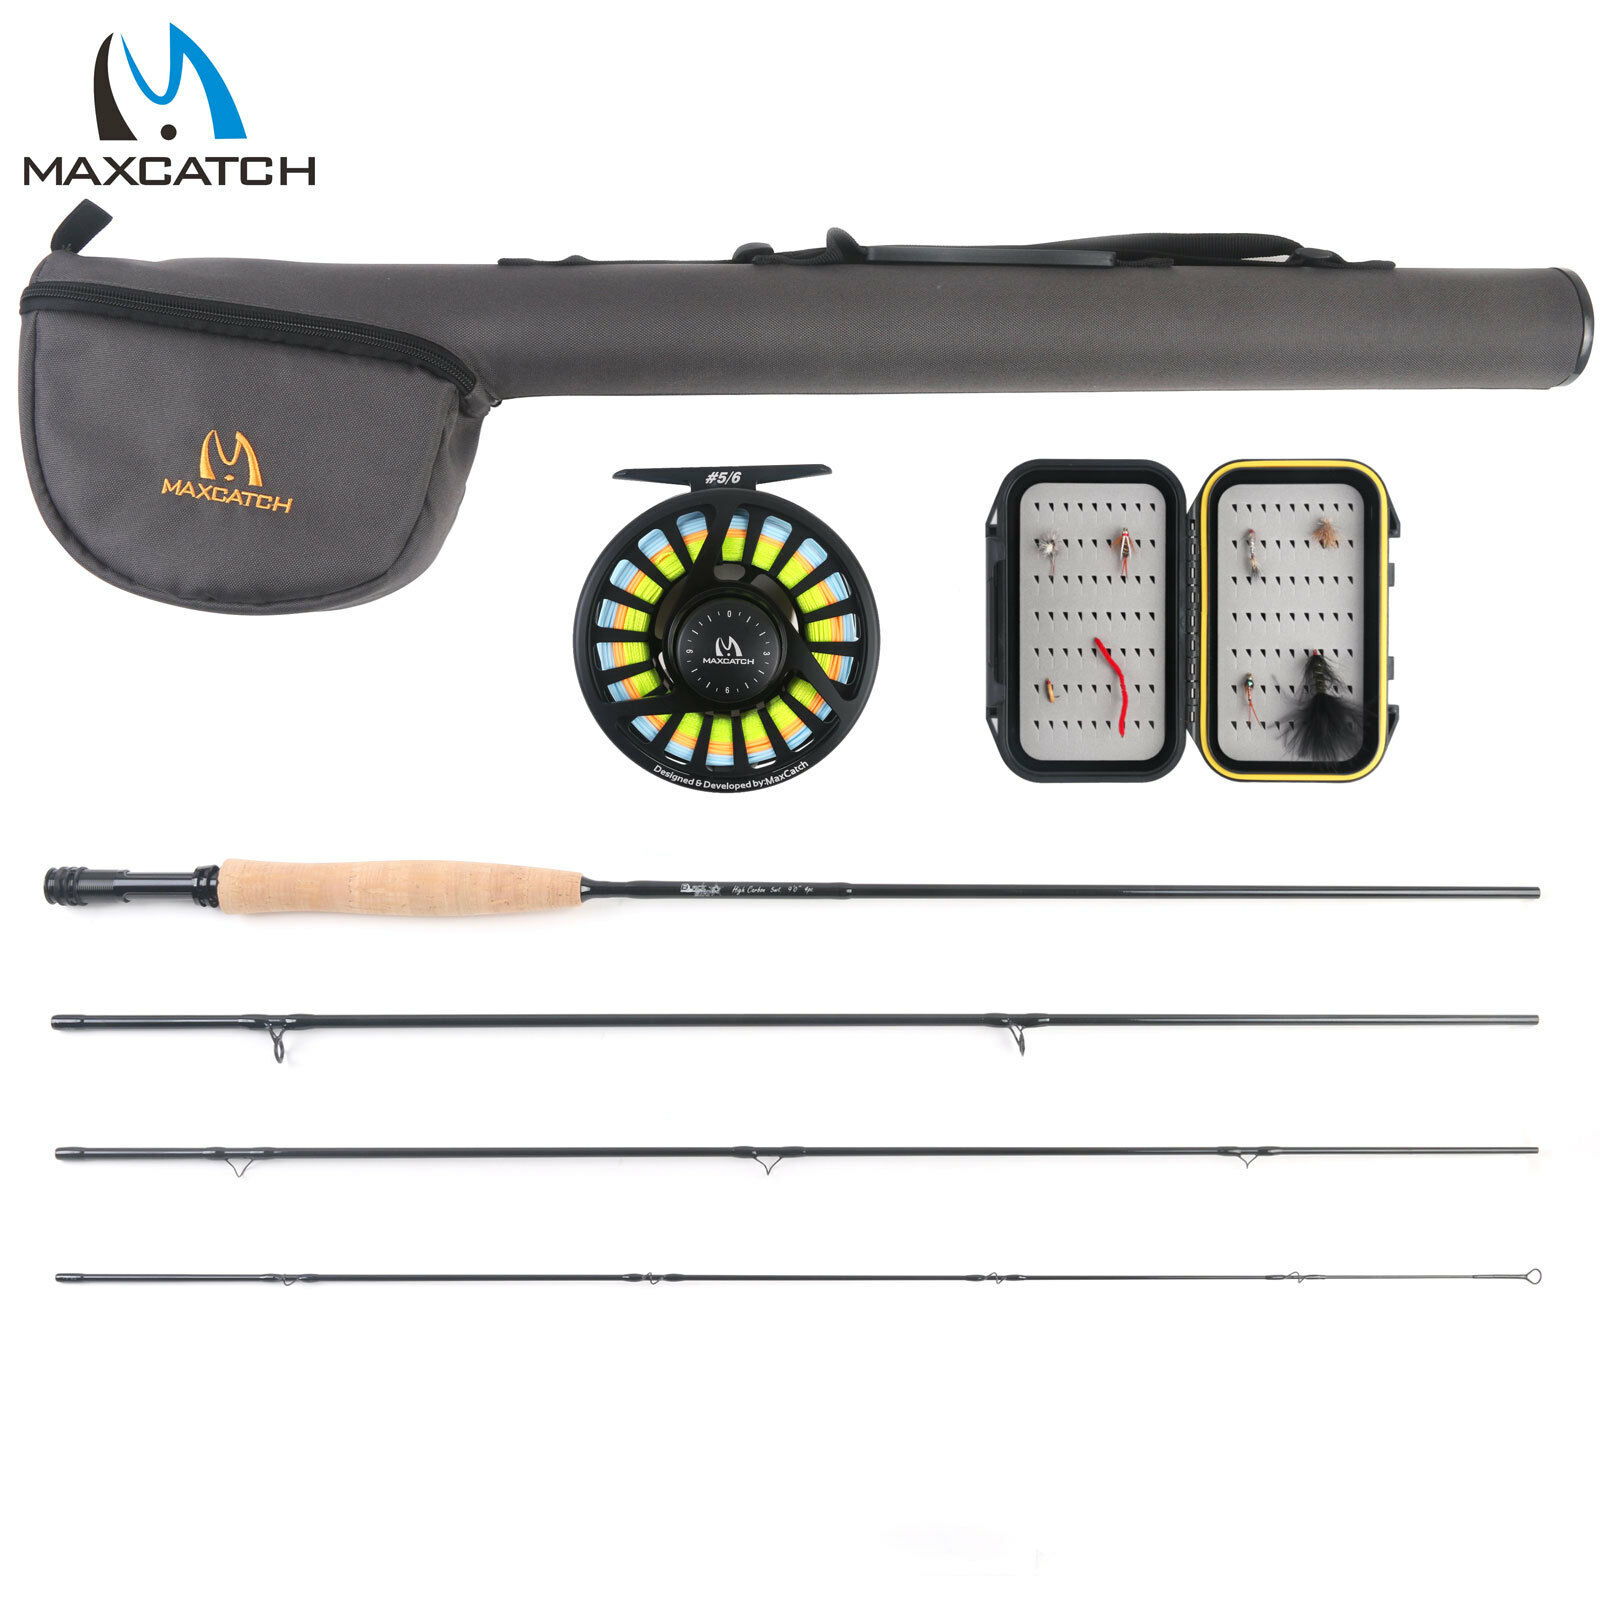 Maxcatch 56wt Fly Fishing Combo,9' 4piece Rod and Avid Prespooled Reel Outfit